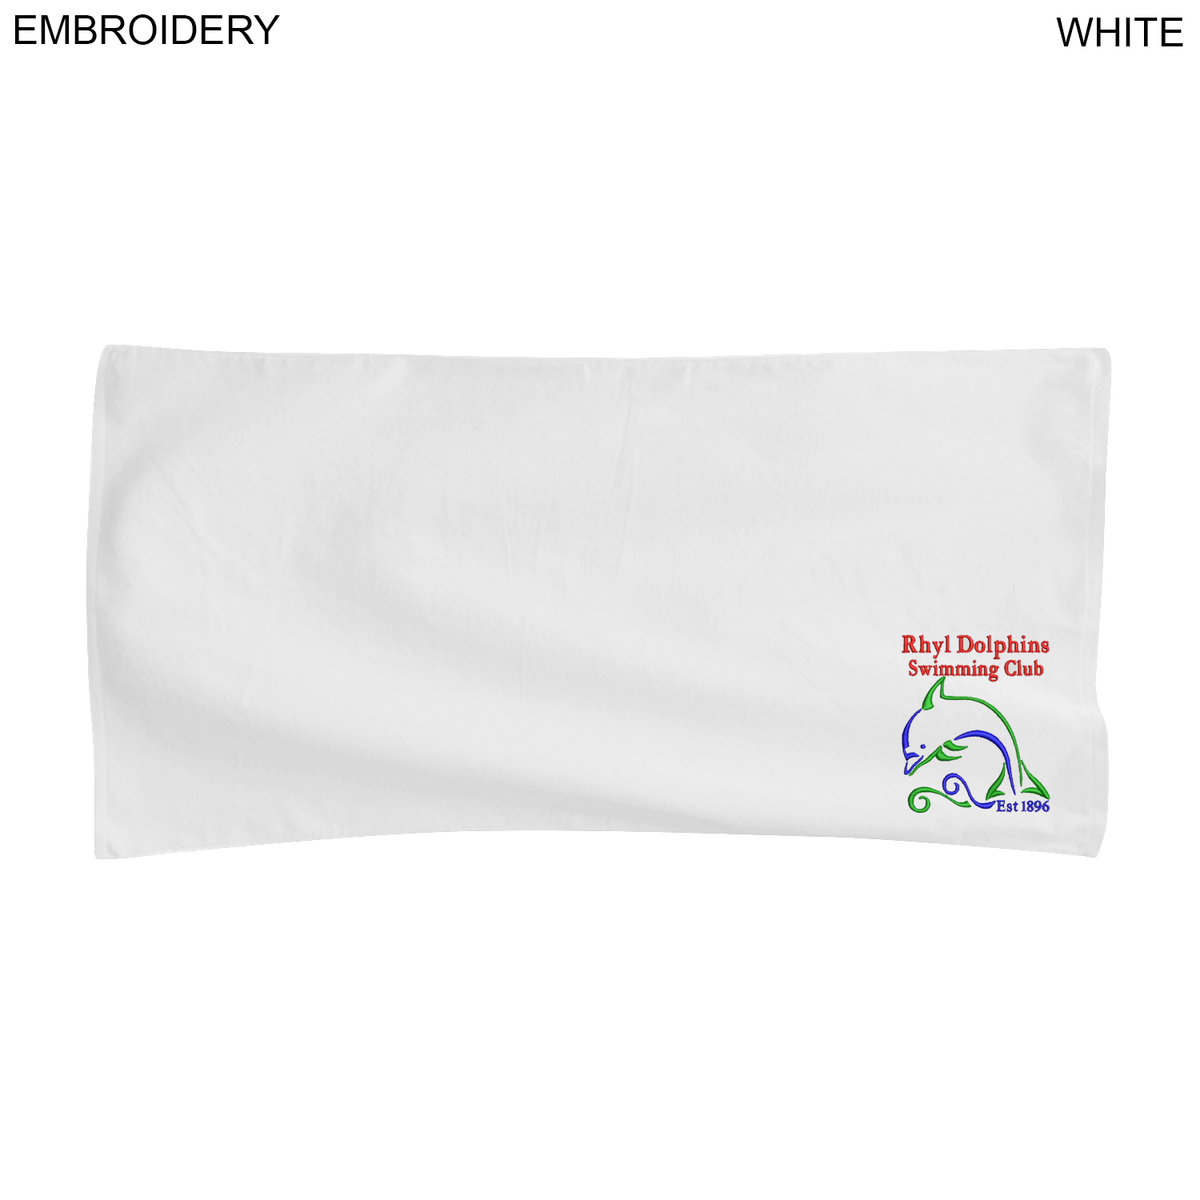 22x44 Towels: Velour Towel, 22x44, Embroidered Or Blank - EM375W